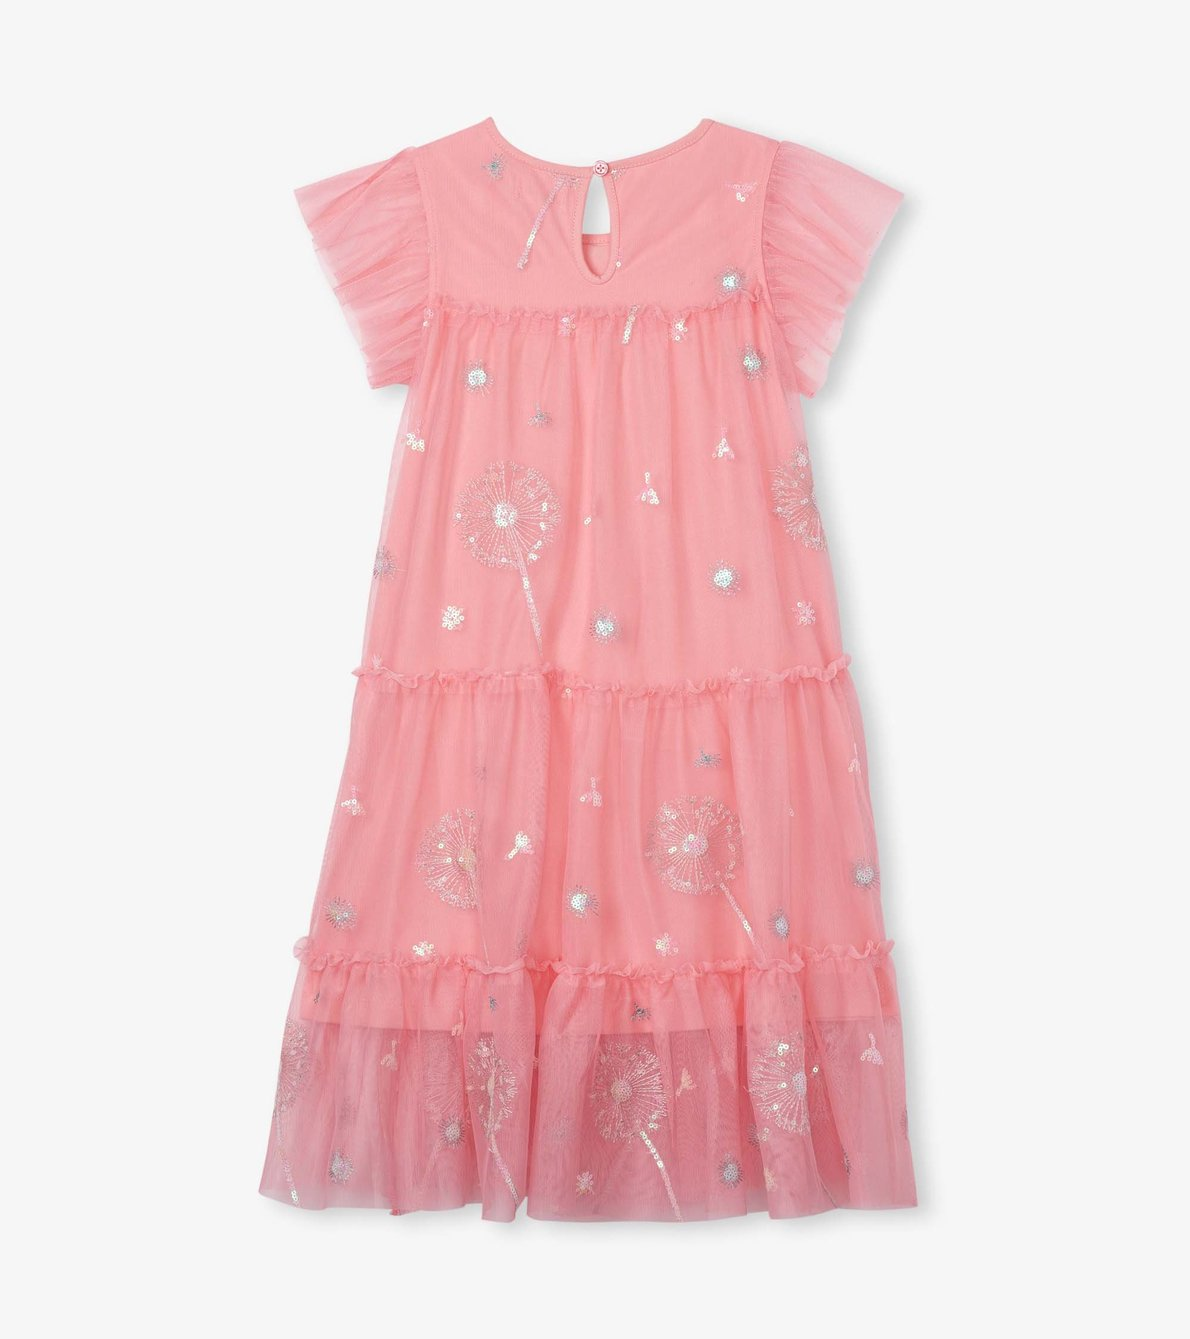 View larger image of Pink Dreams Flutter Tulle Dress